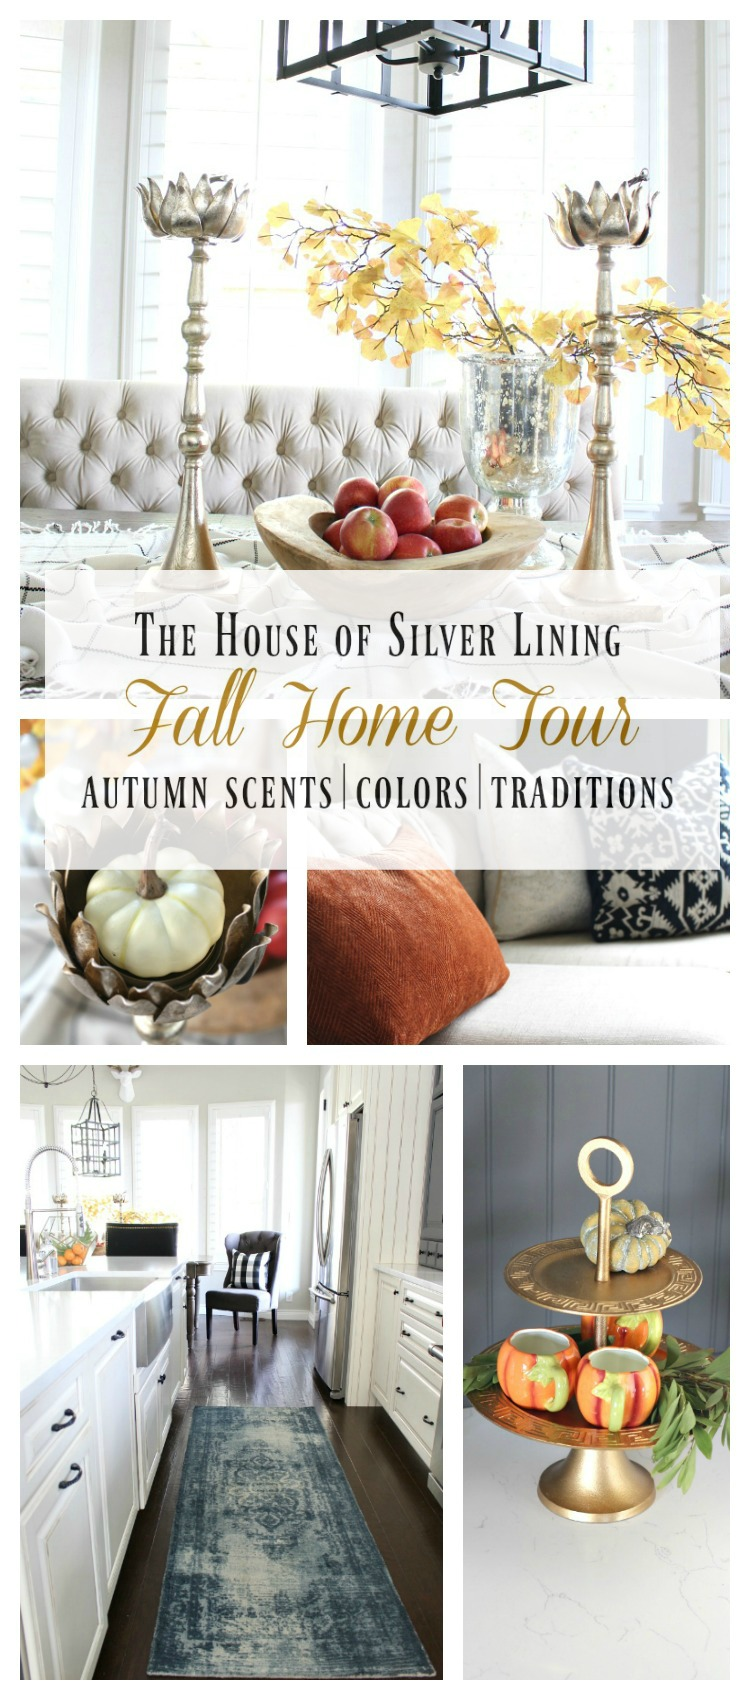 fall-home-tour-autumn-scents-colors-family-traditions-1